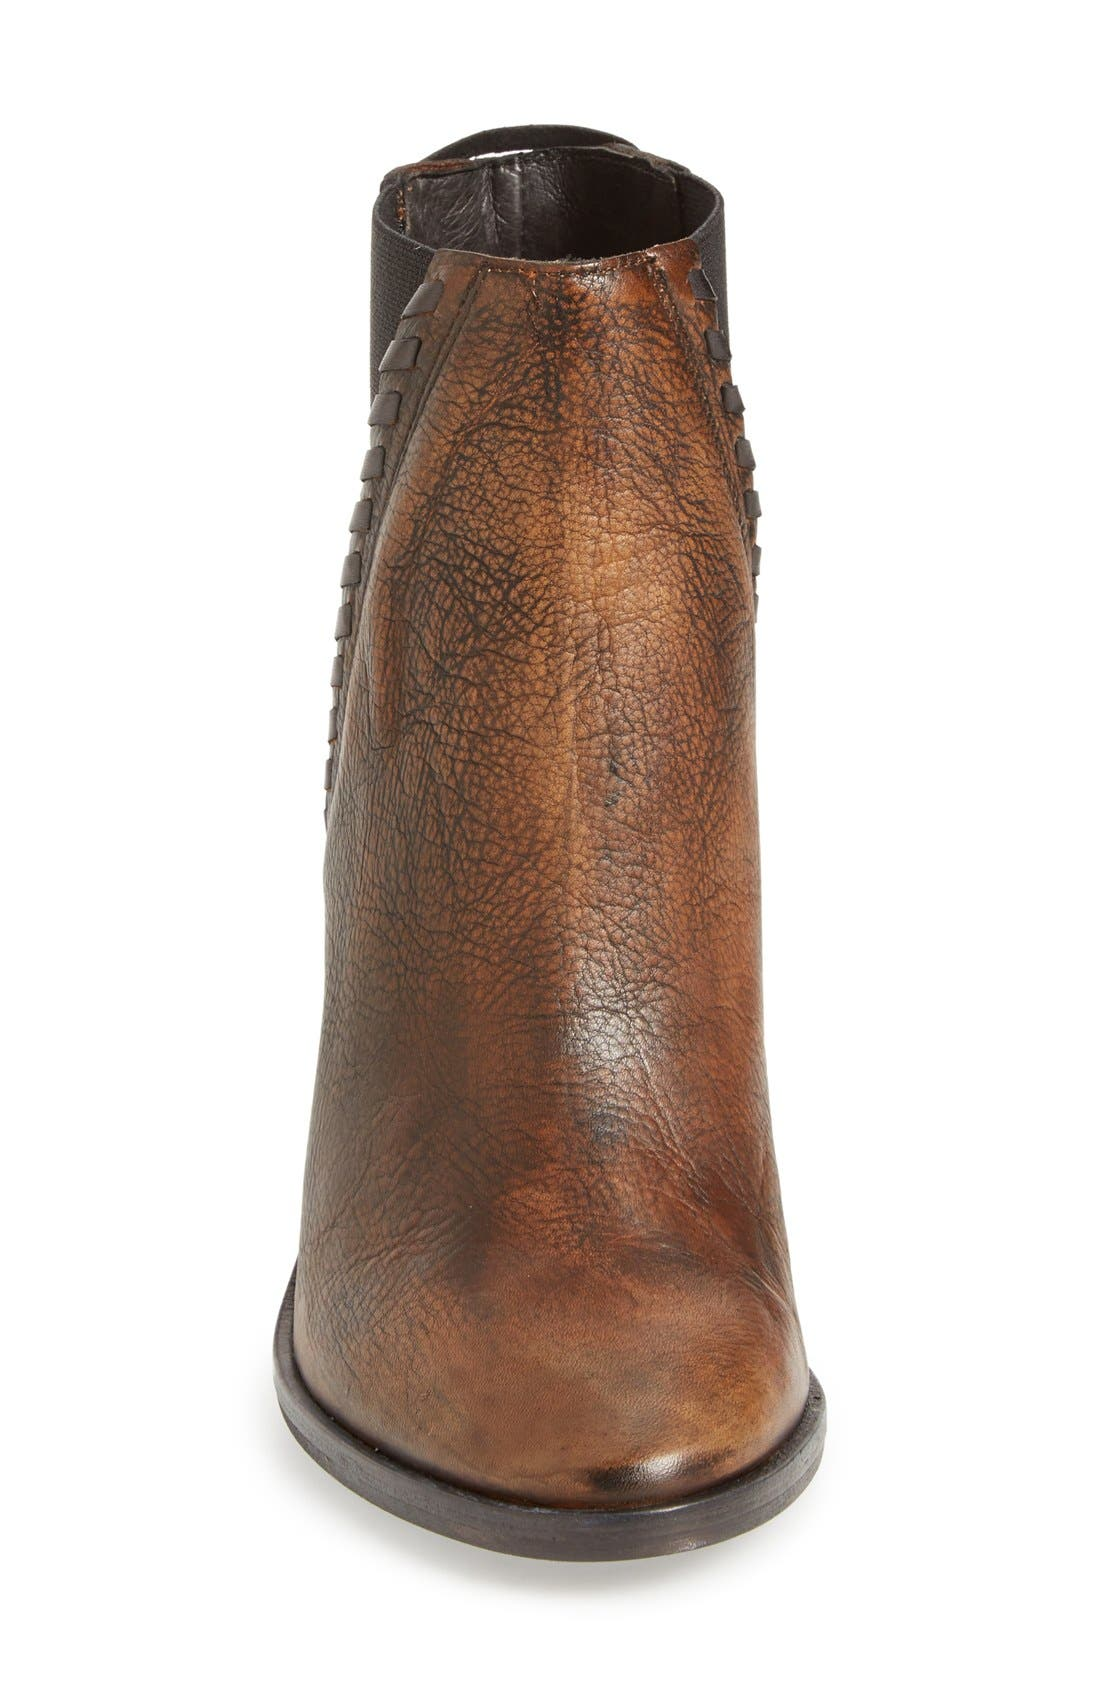 'Stardust' Chelsea Boot,                             Alternate thumbnail 3, color,                             Brown/ Bronze Leather